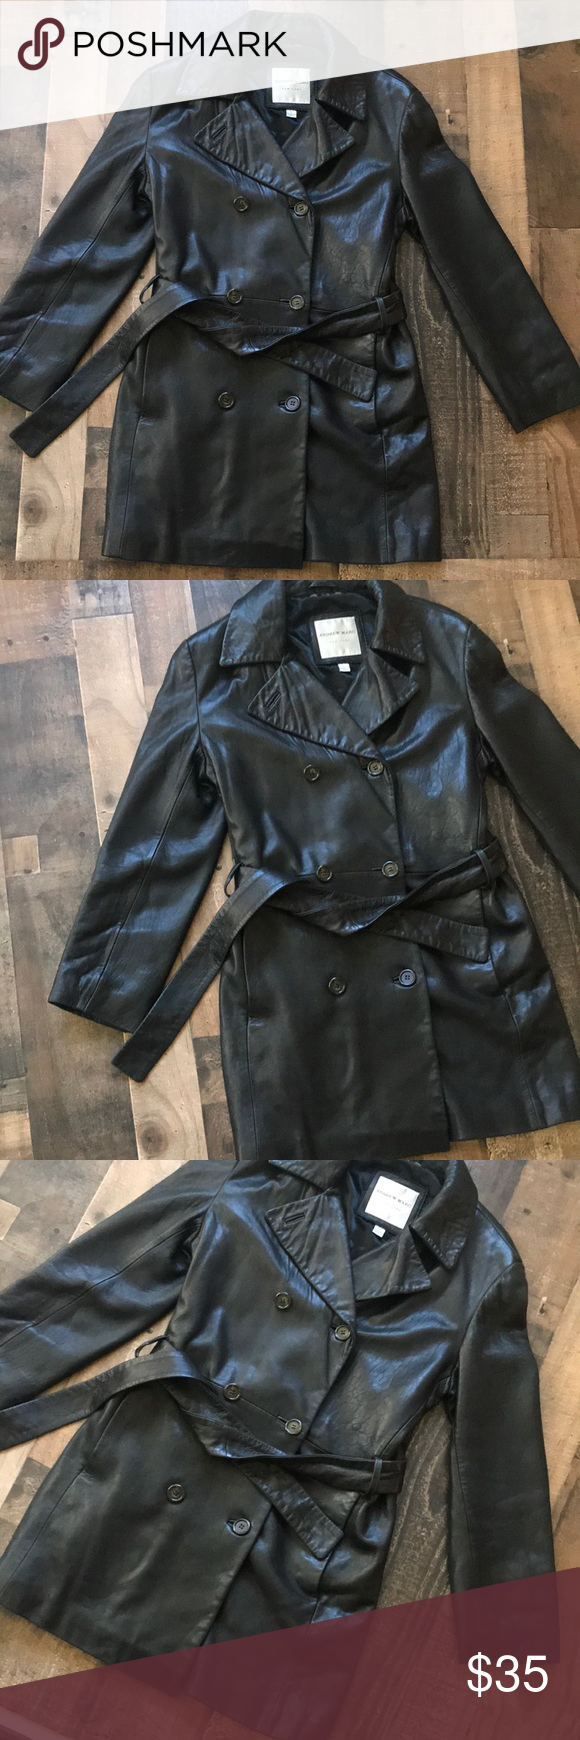 ANDREW MARC Leather jacket coat